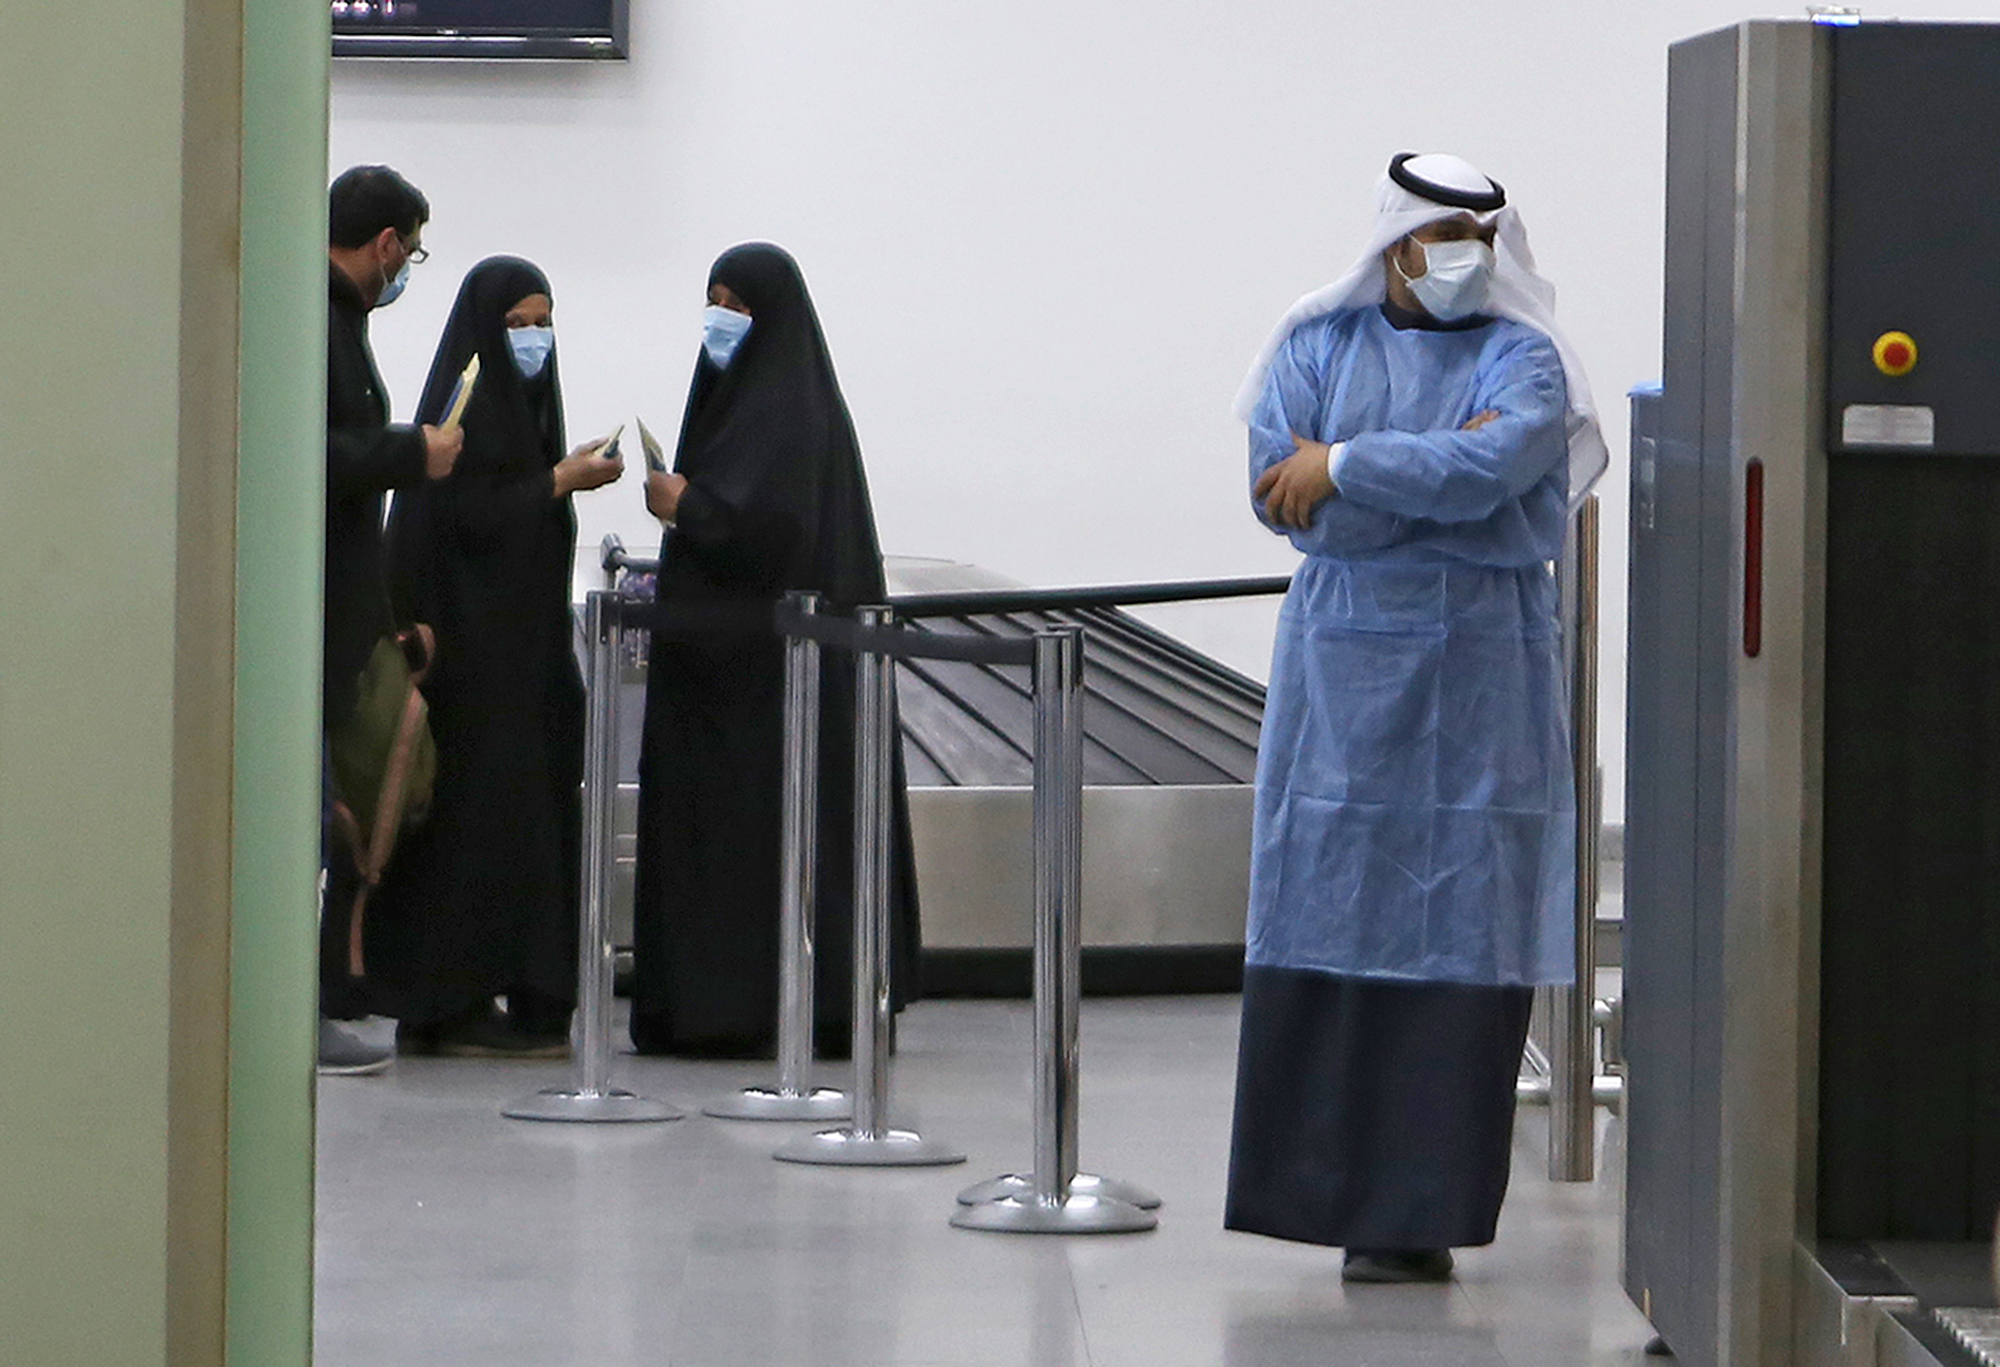 Kuwaitis coming back from Iran wait at Sheikh Saad Airport in Kuwait City on February 22 before being taken to a hospital to be tested for coronavirus.